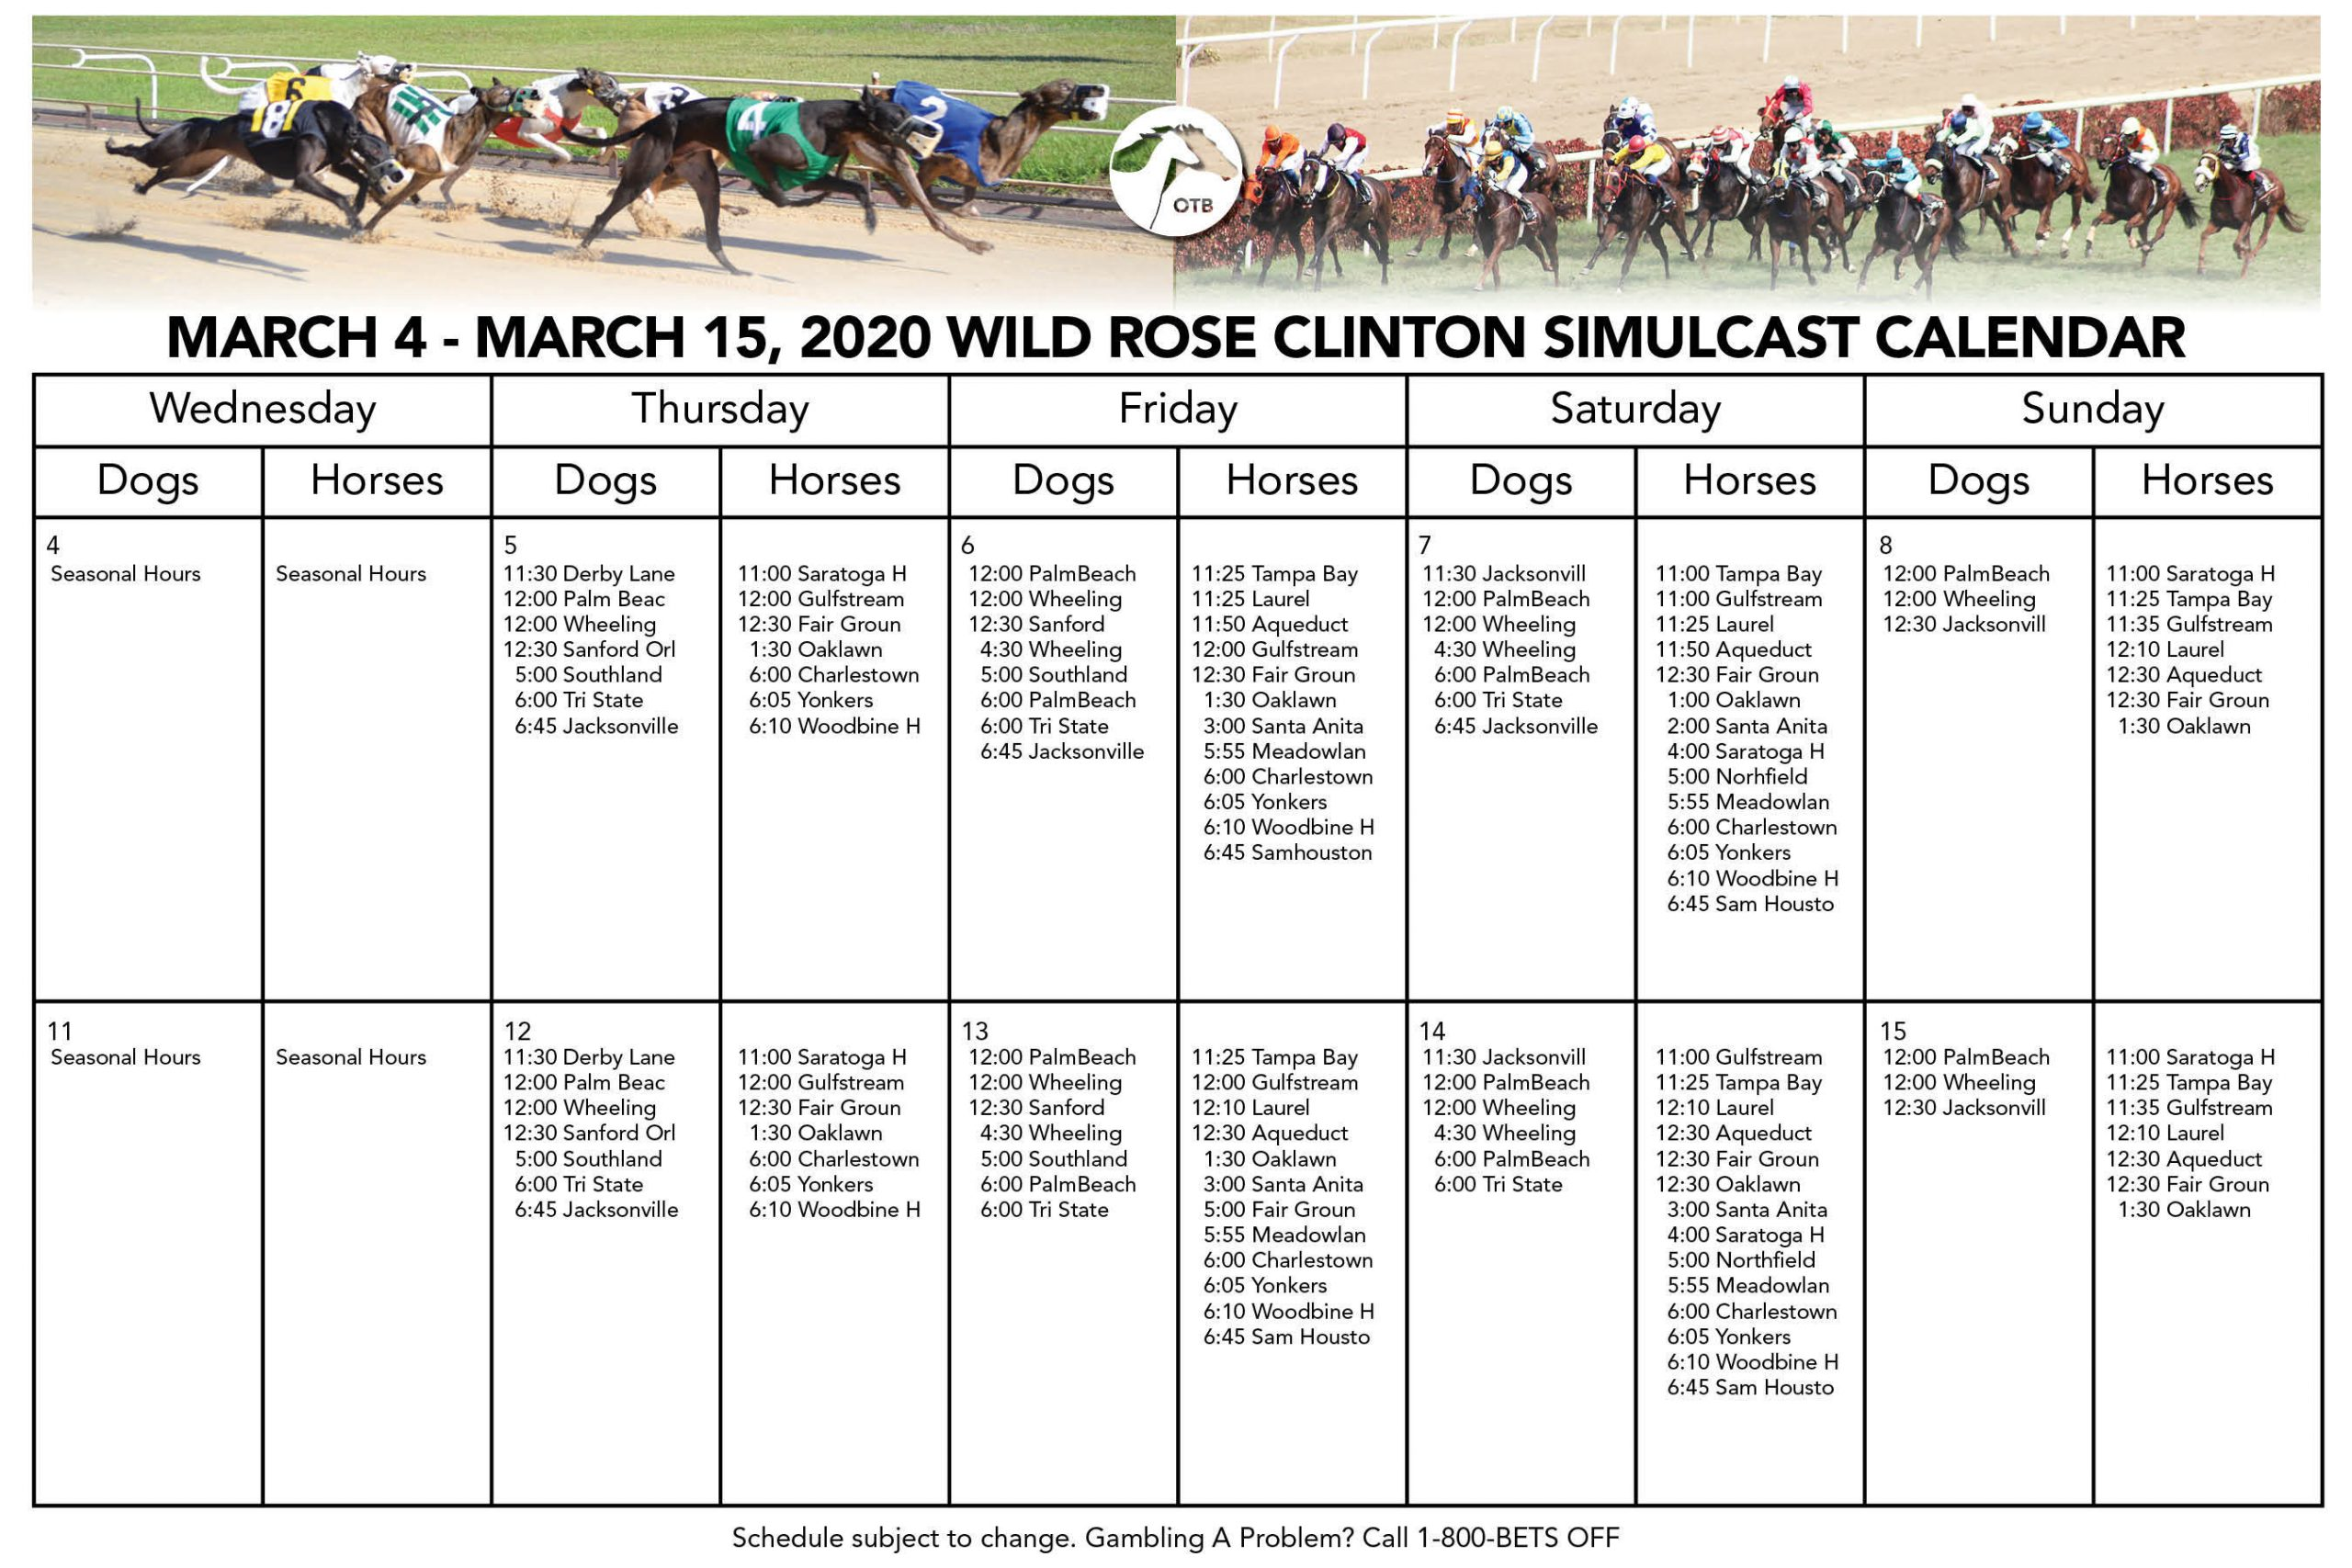 Tampa Bay Downs Race Track Calendar | Printable Calendar throughout Tampa Bay Downs Schedule